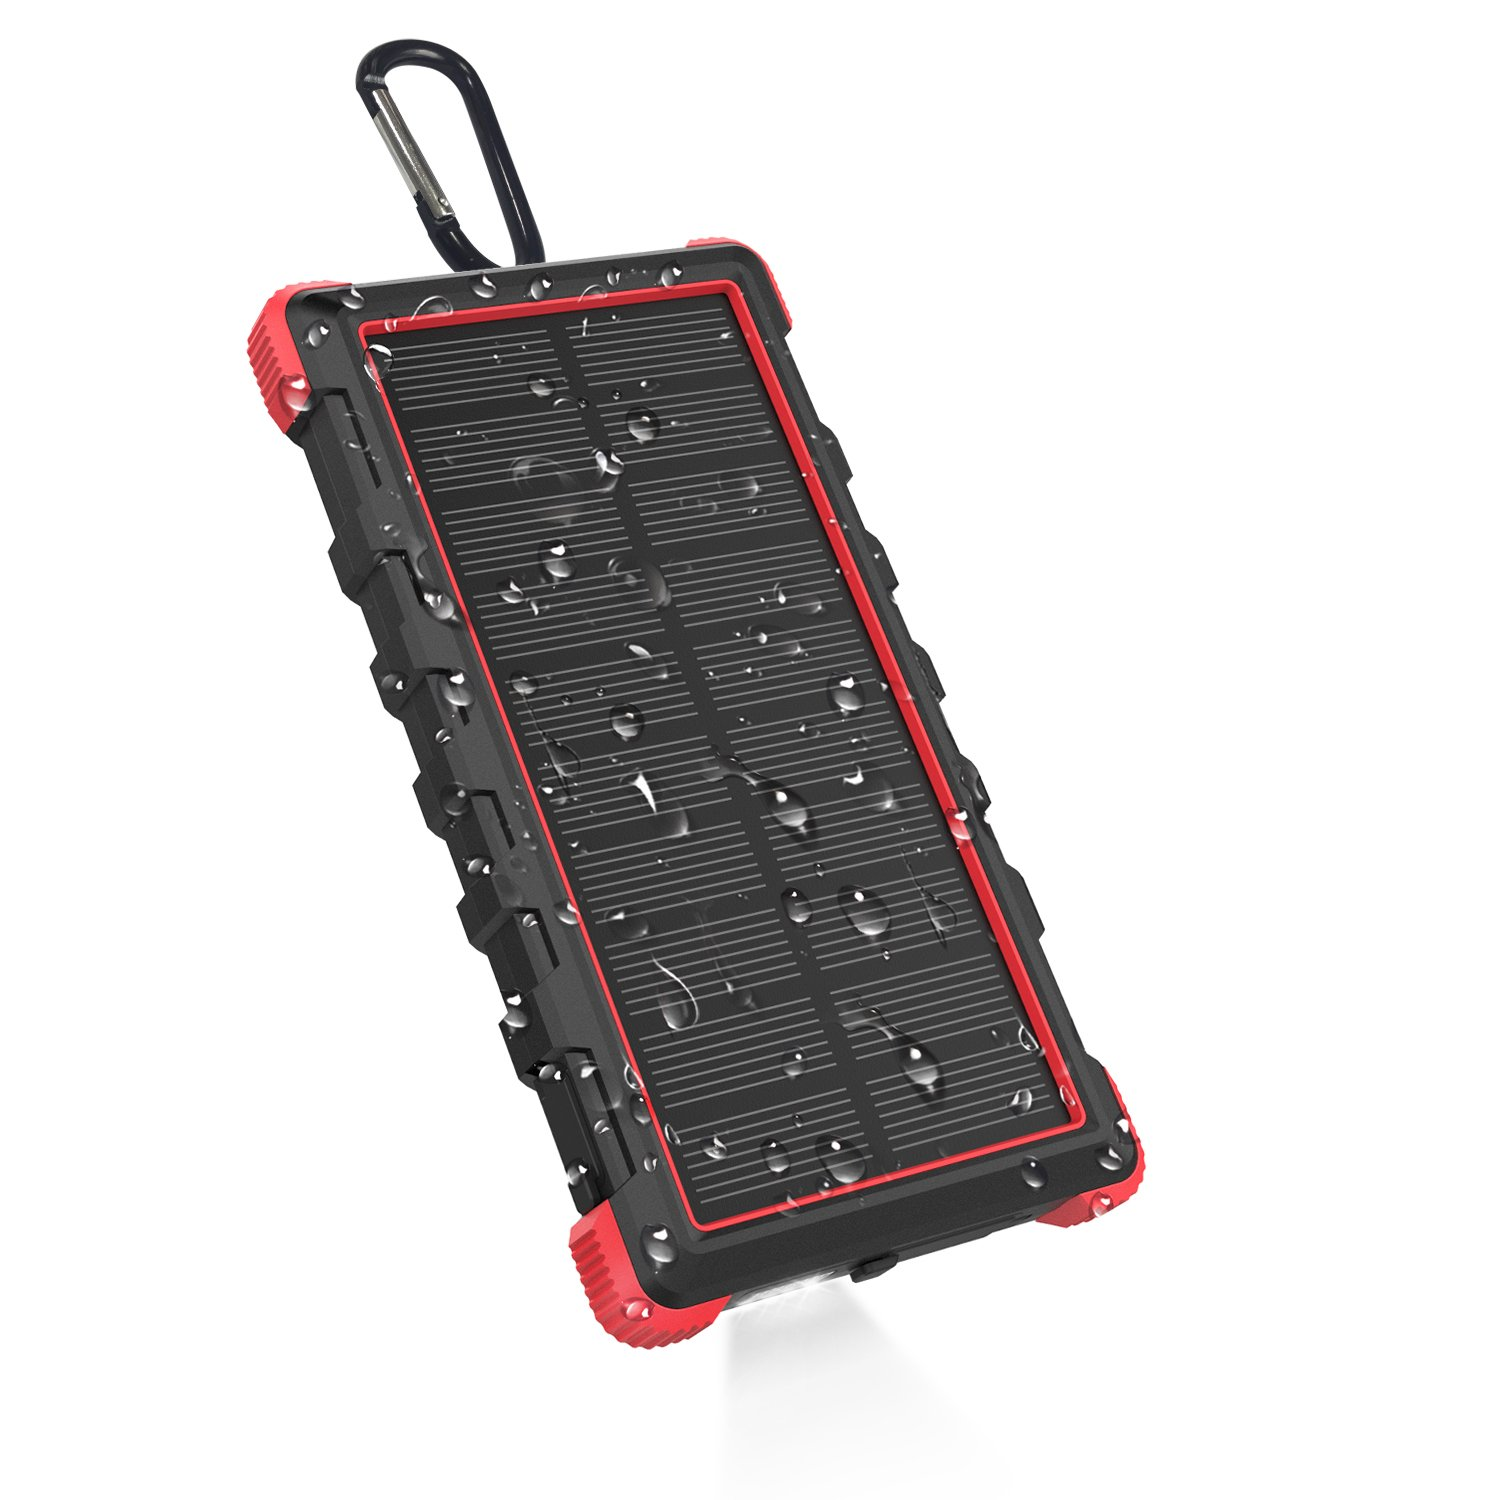 [Type-C] OUTXE 10000mAh Rugged Solar Charger with Flashlight Waterproof Portable Power Bank Outdoor